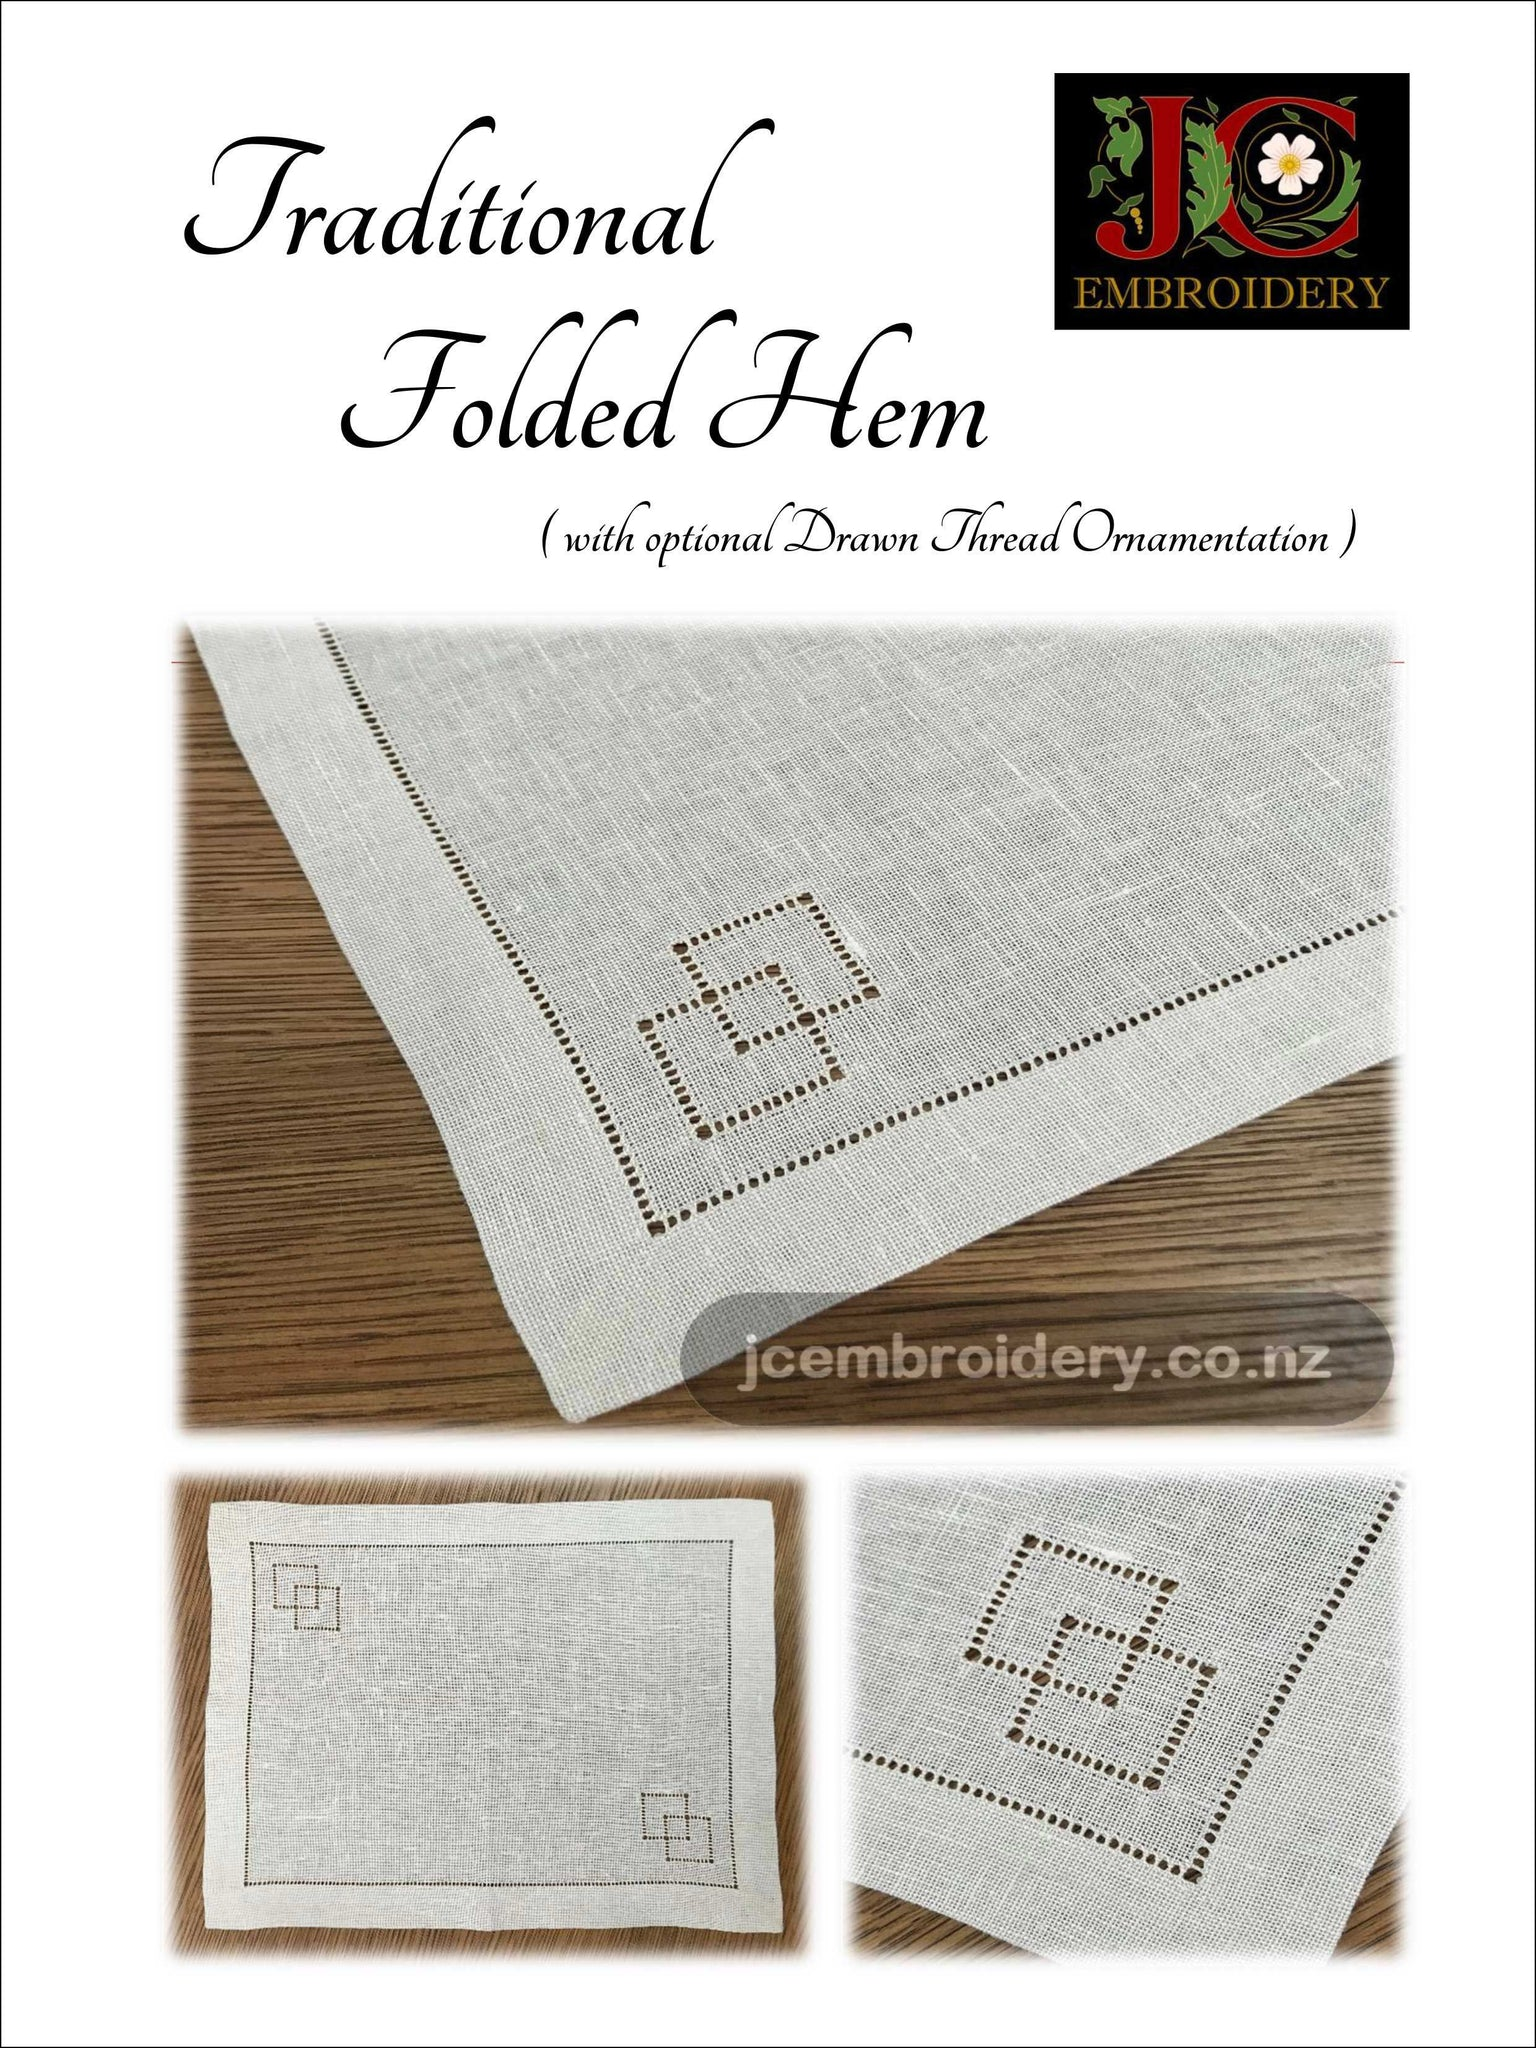 Traditional Folded Hem